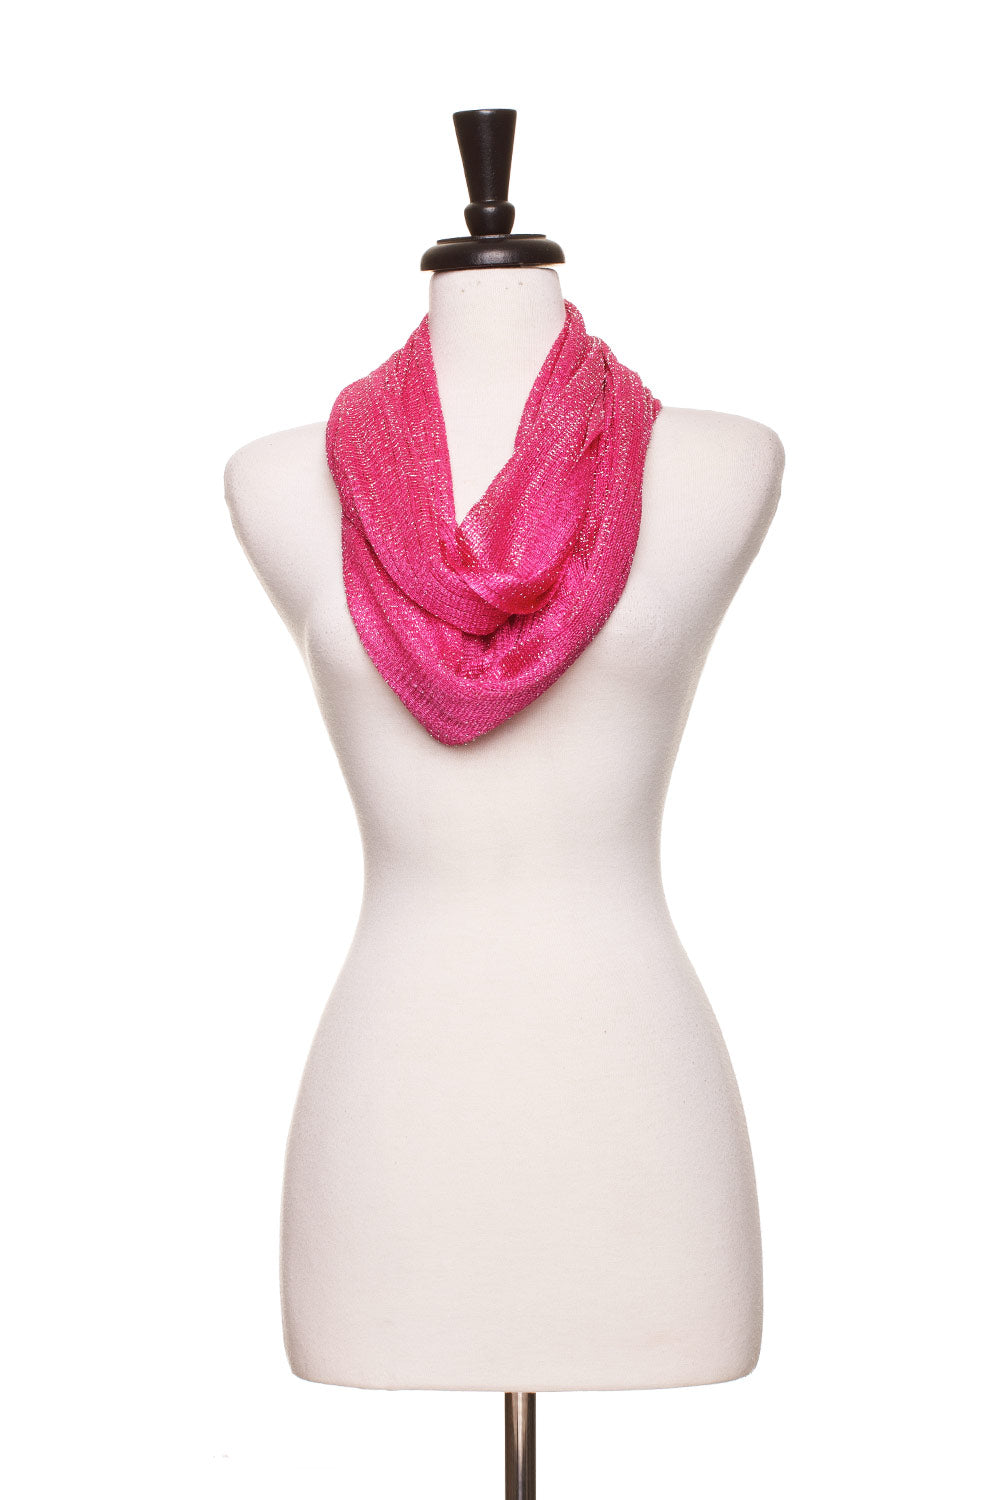 Type 4 Majestic Infinity Scarf in Pink